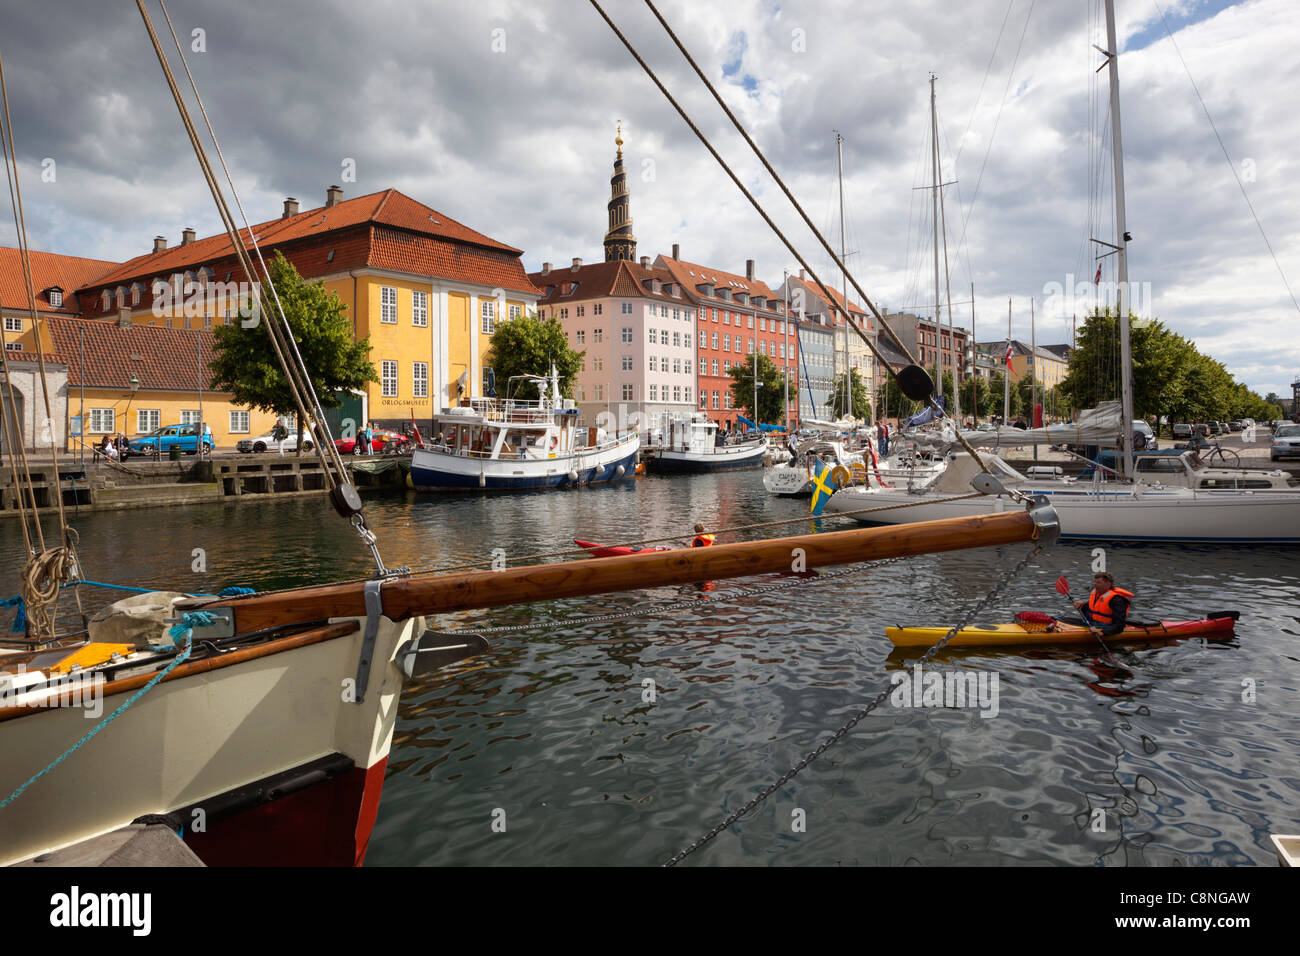 View along Christianshavns Kanal - Stock Image